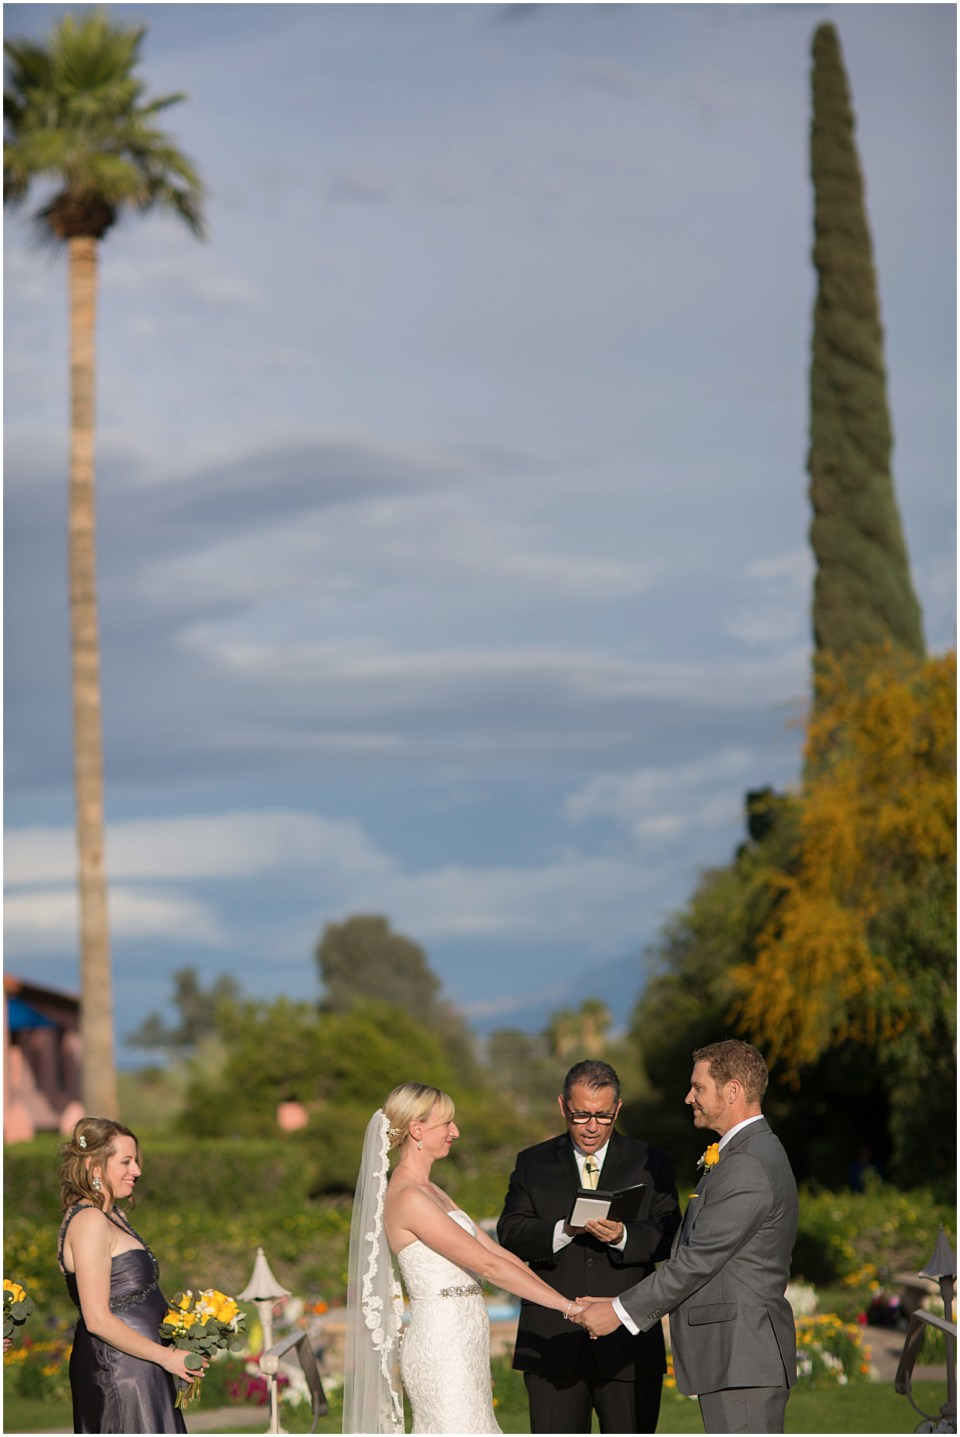 Wedding ceremony at the Historic Arizona Inn, Tucson, Arizona